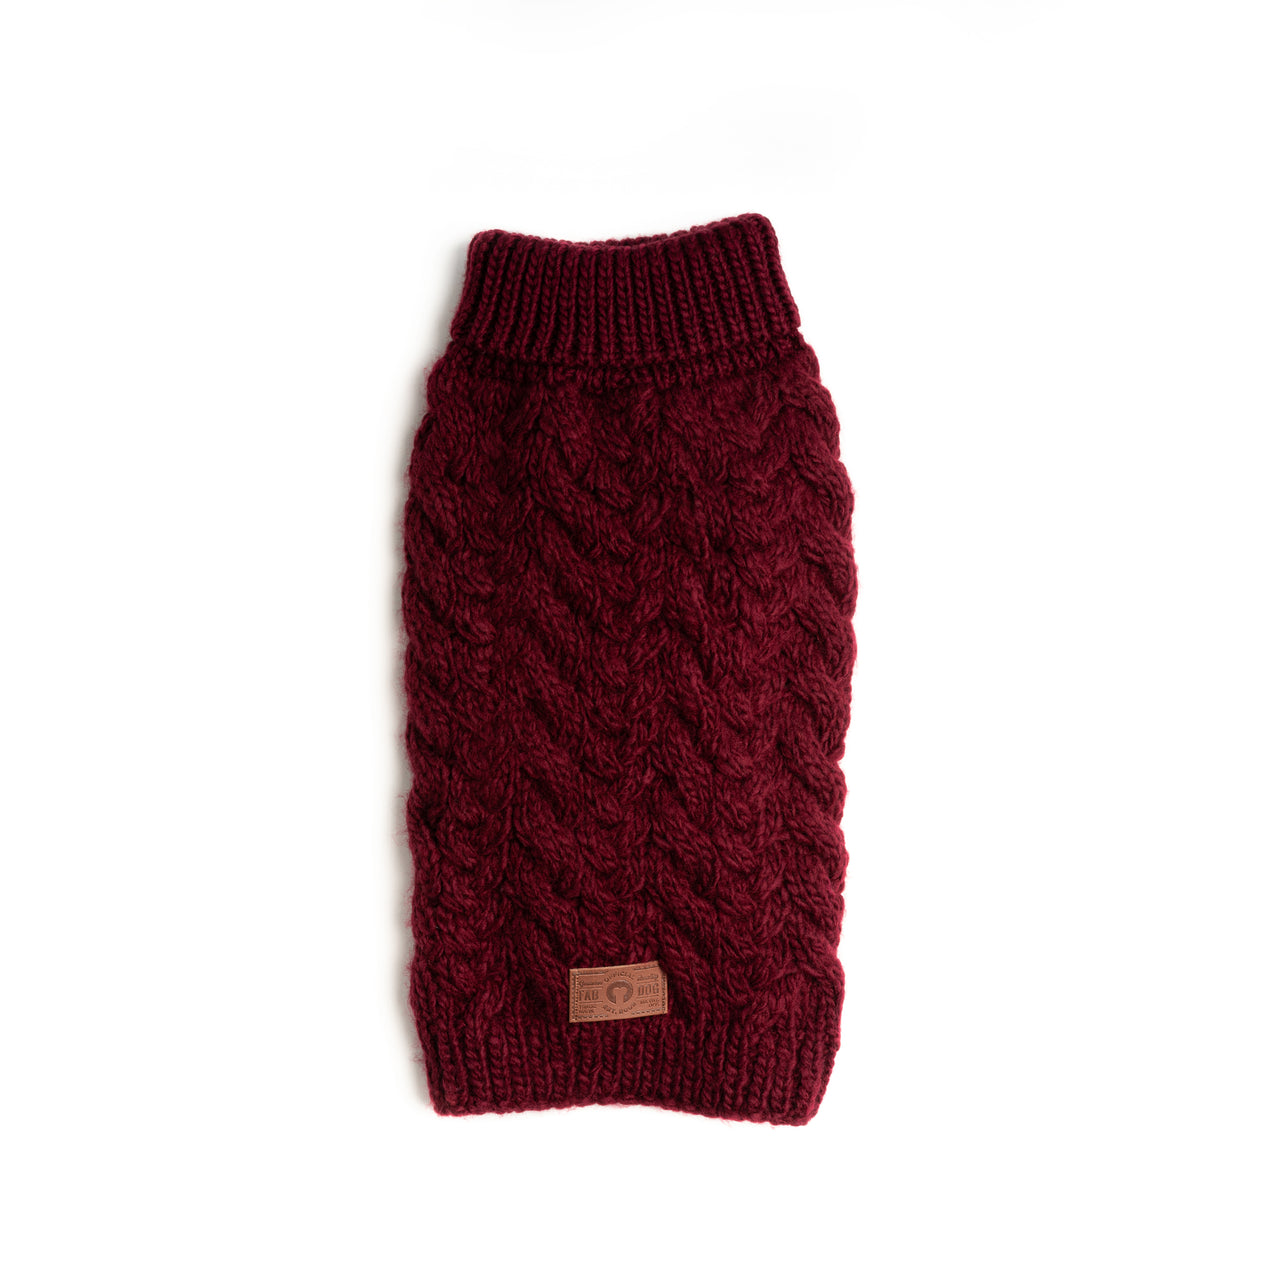 Burgundy Wool Turtleneck Sweater